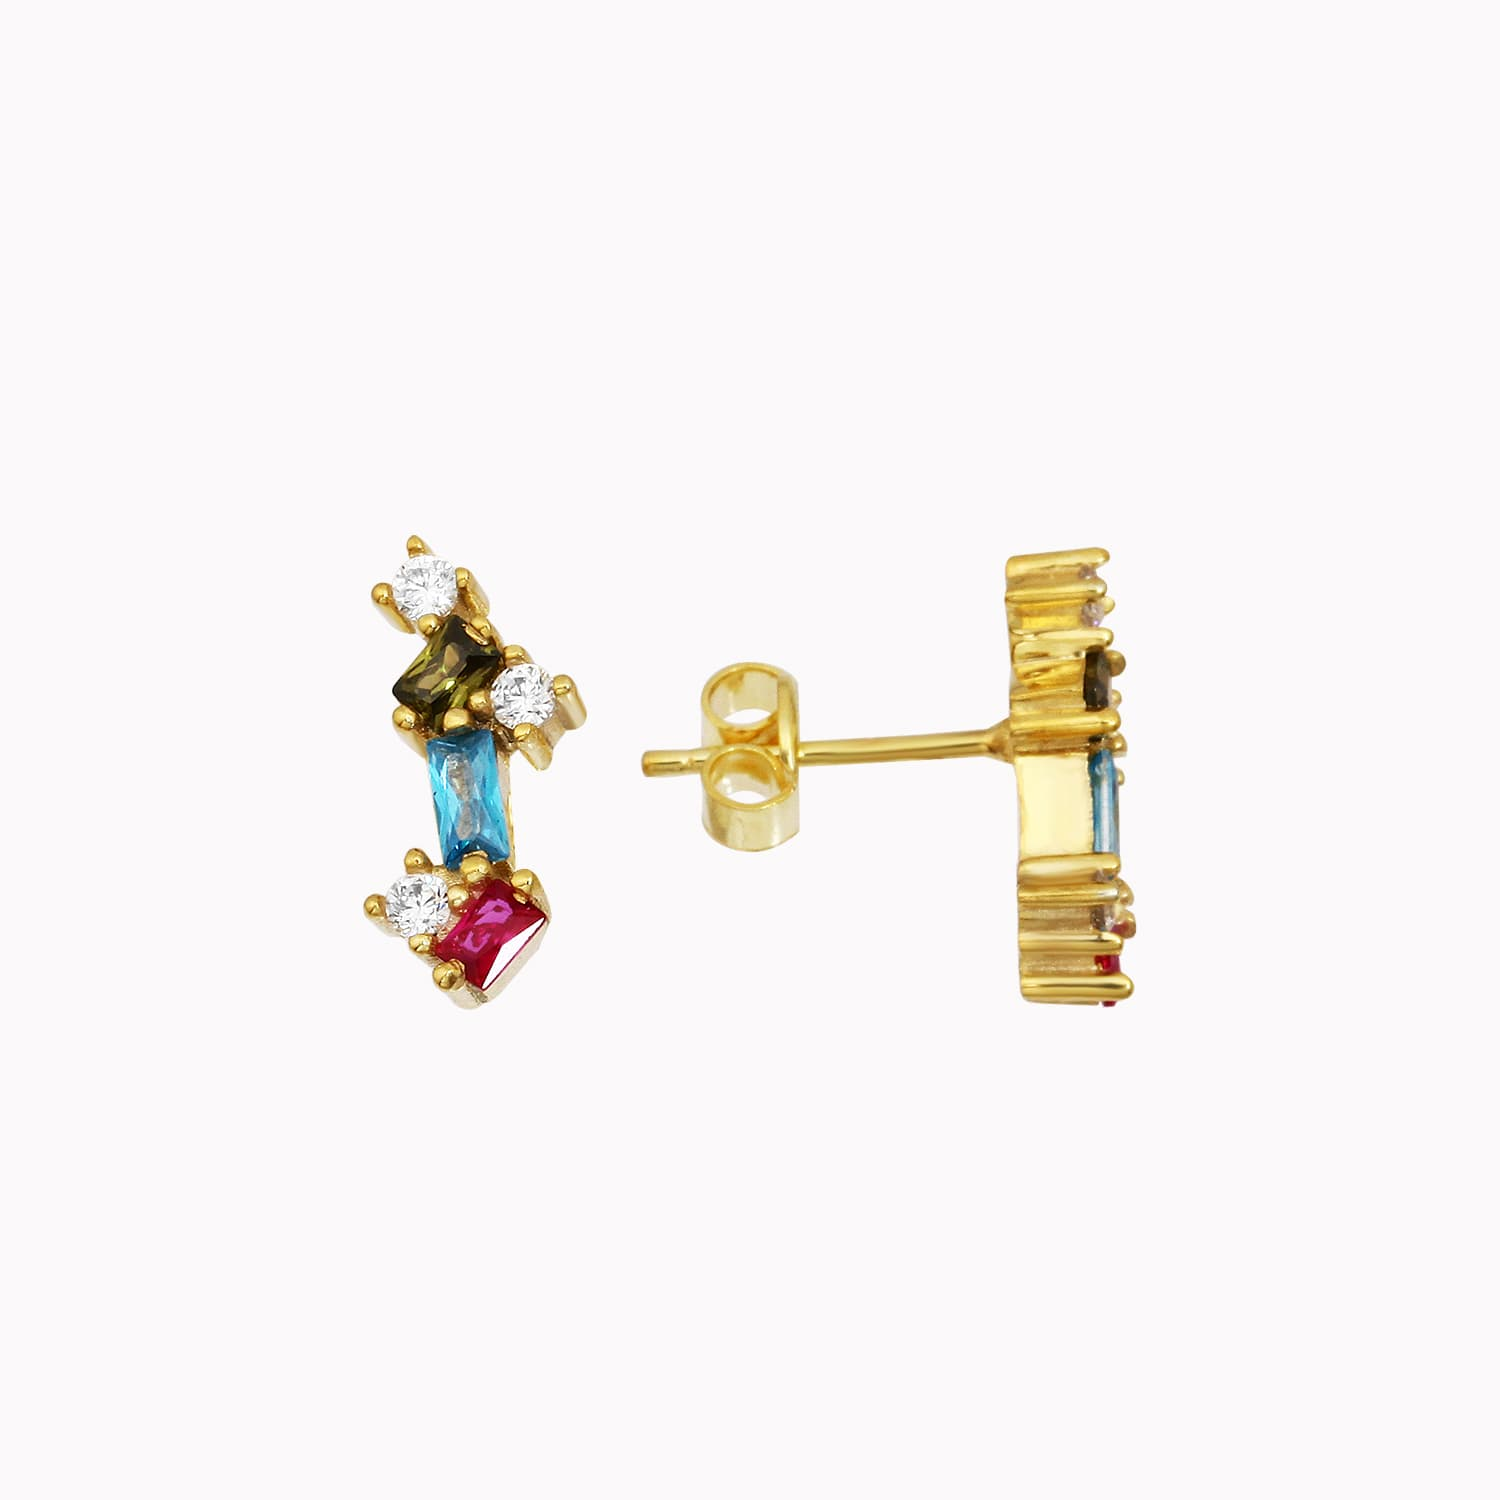 Sugar Mini Trio - Gold Plated Earrings